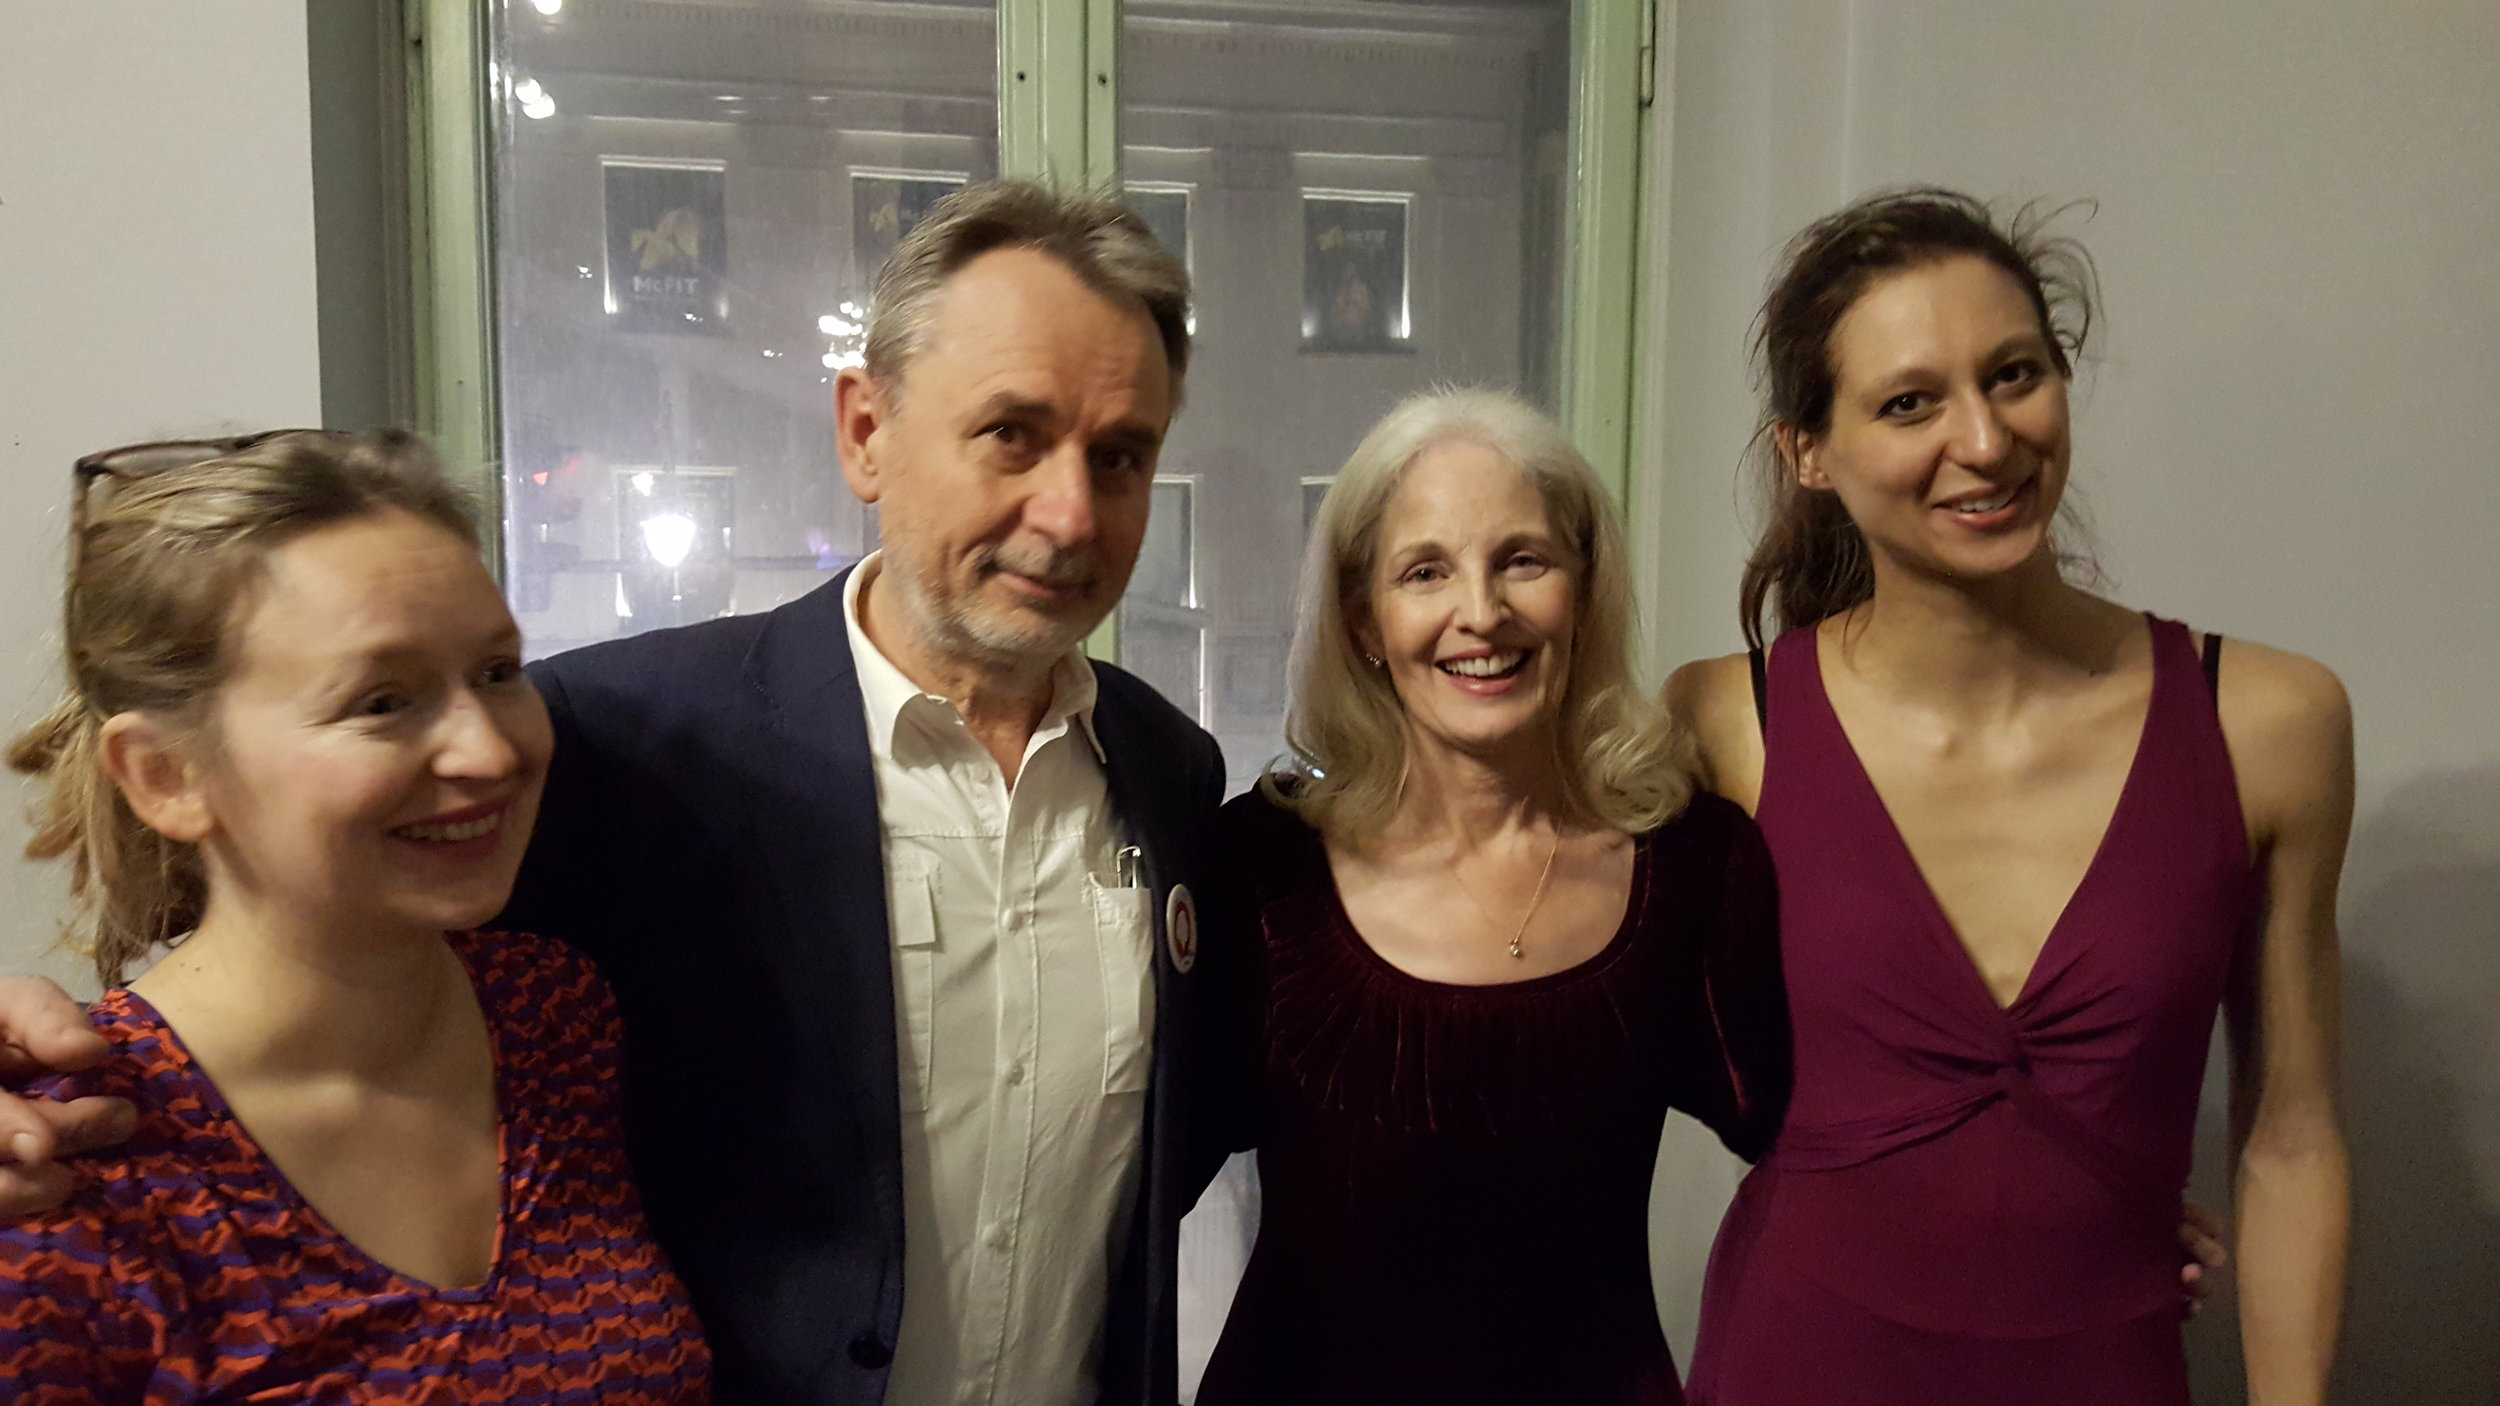 Pam and dancers Ksenia Opria and Hania Jurczak with host and founder of this festival, Jarek Cholodecki, after successful collaboration to music of Chopin and Gershwin, February 25, 2017